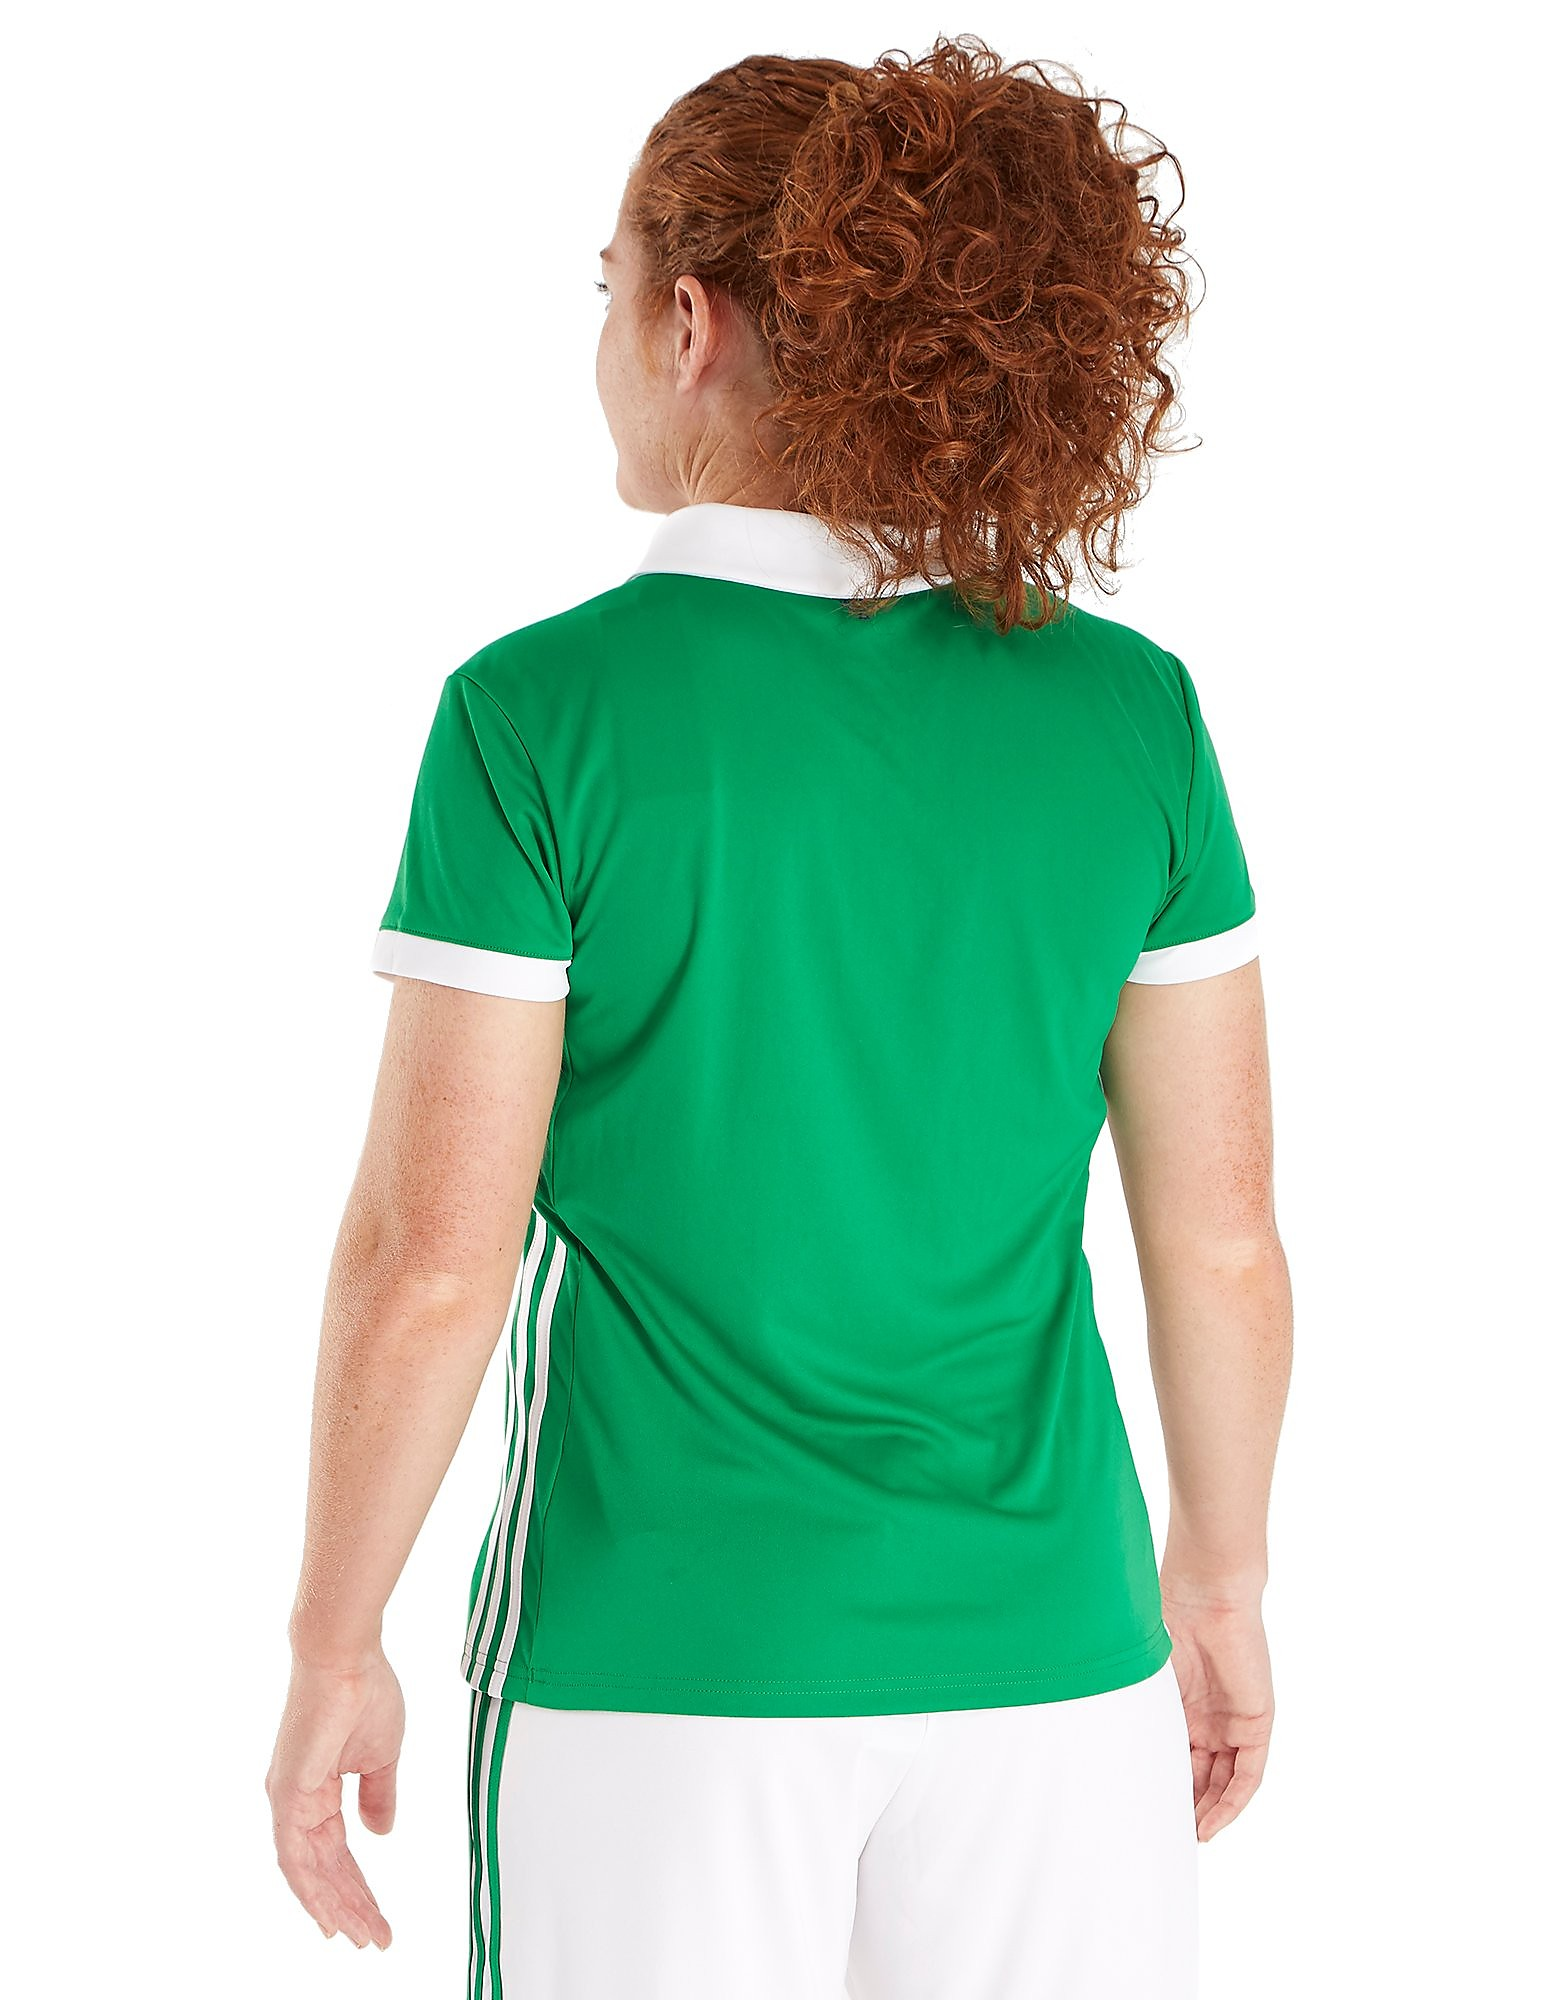 adidas Northern Ireland 2017/18 Home Shirt Womens